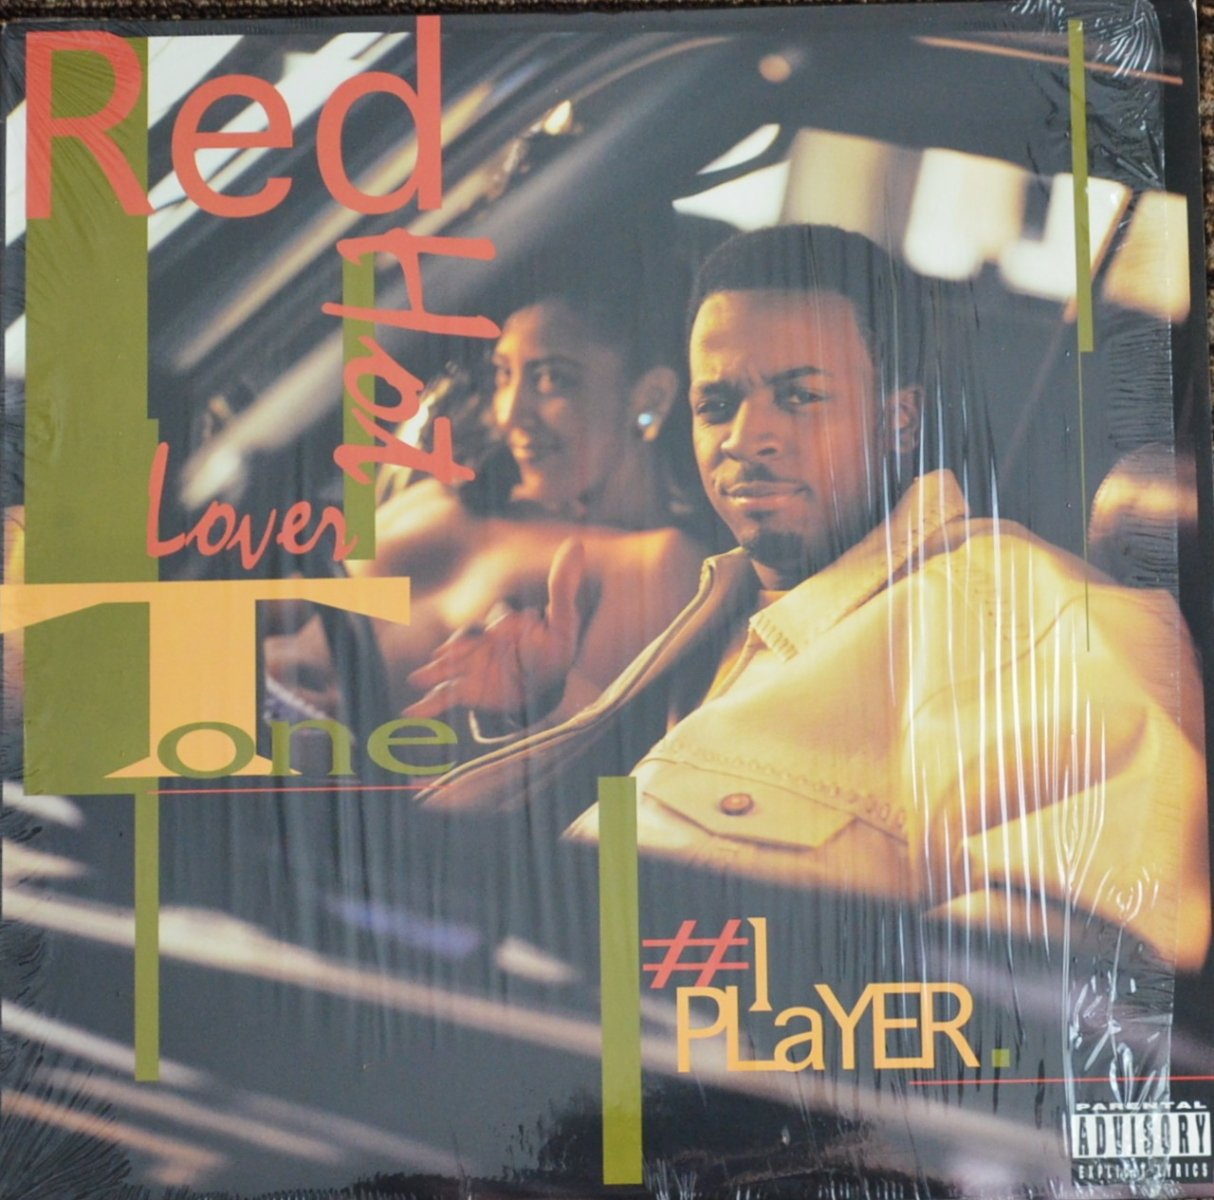 RED HOT LOVER TONE ‎/ #1 PLAYER (PROD BY DIAMOND D) / 98 (PROD BY BUCKWILD) (12